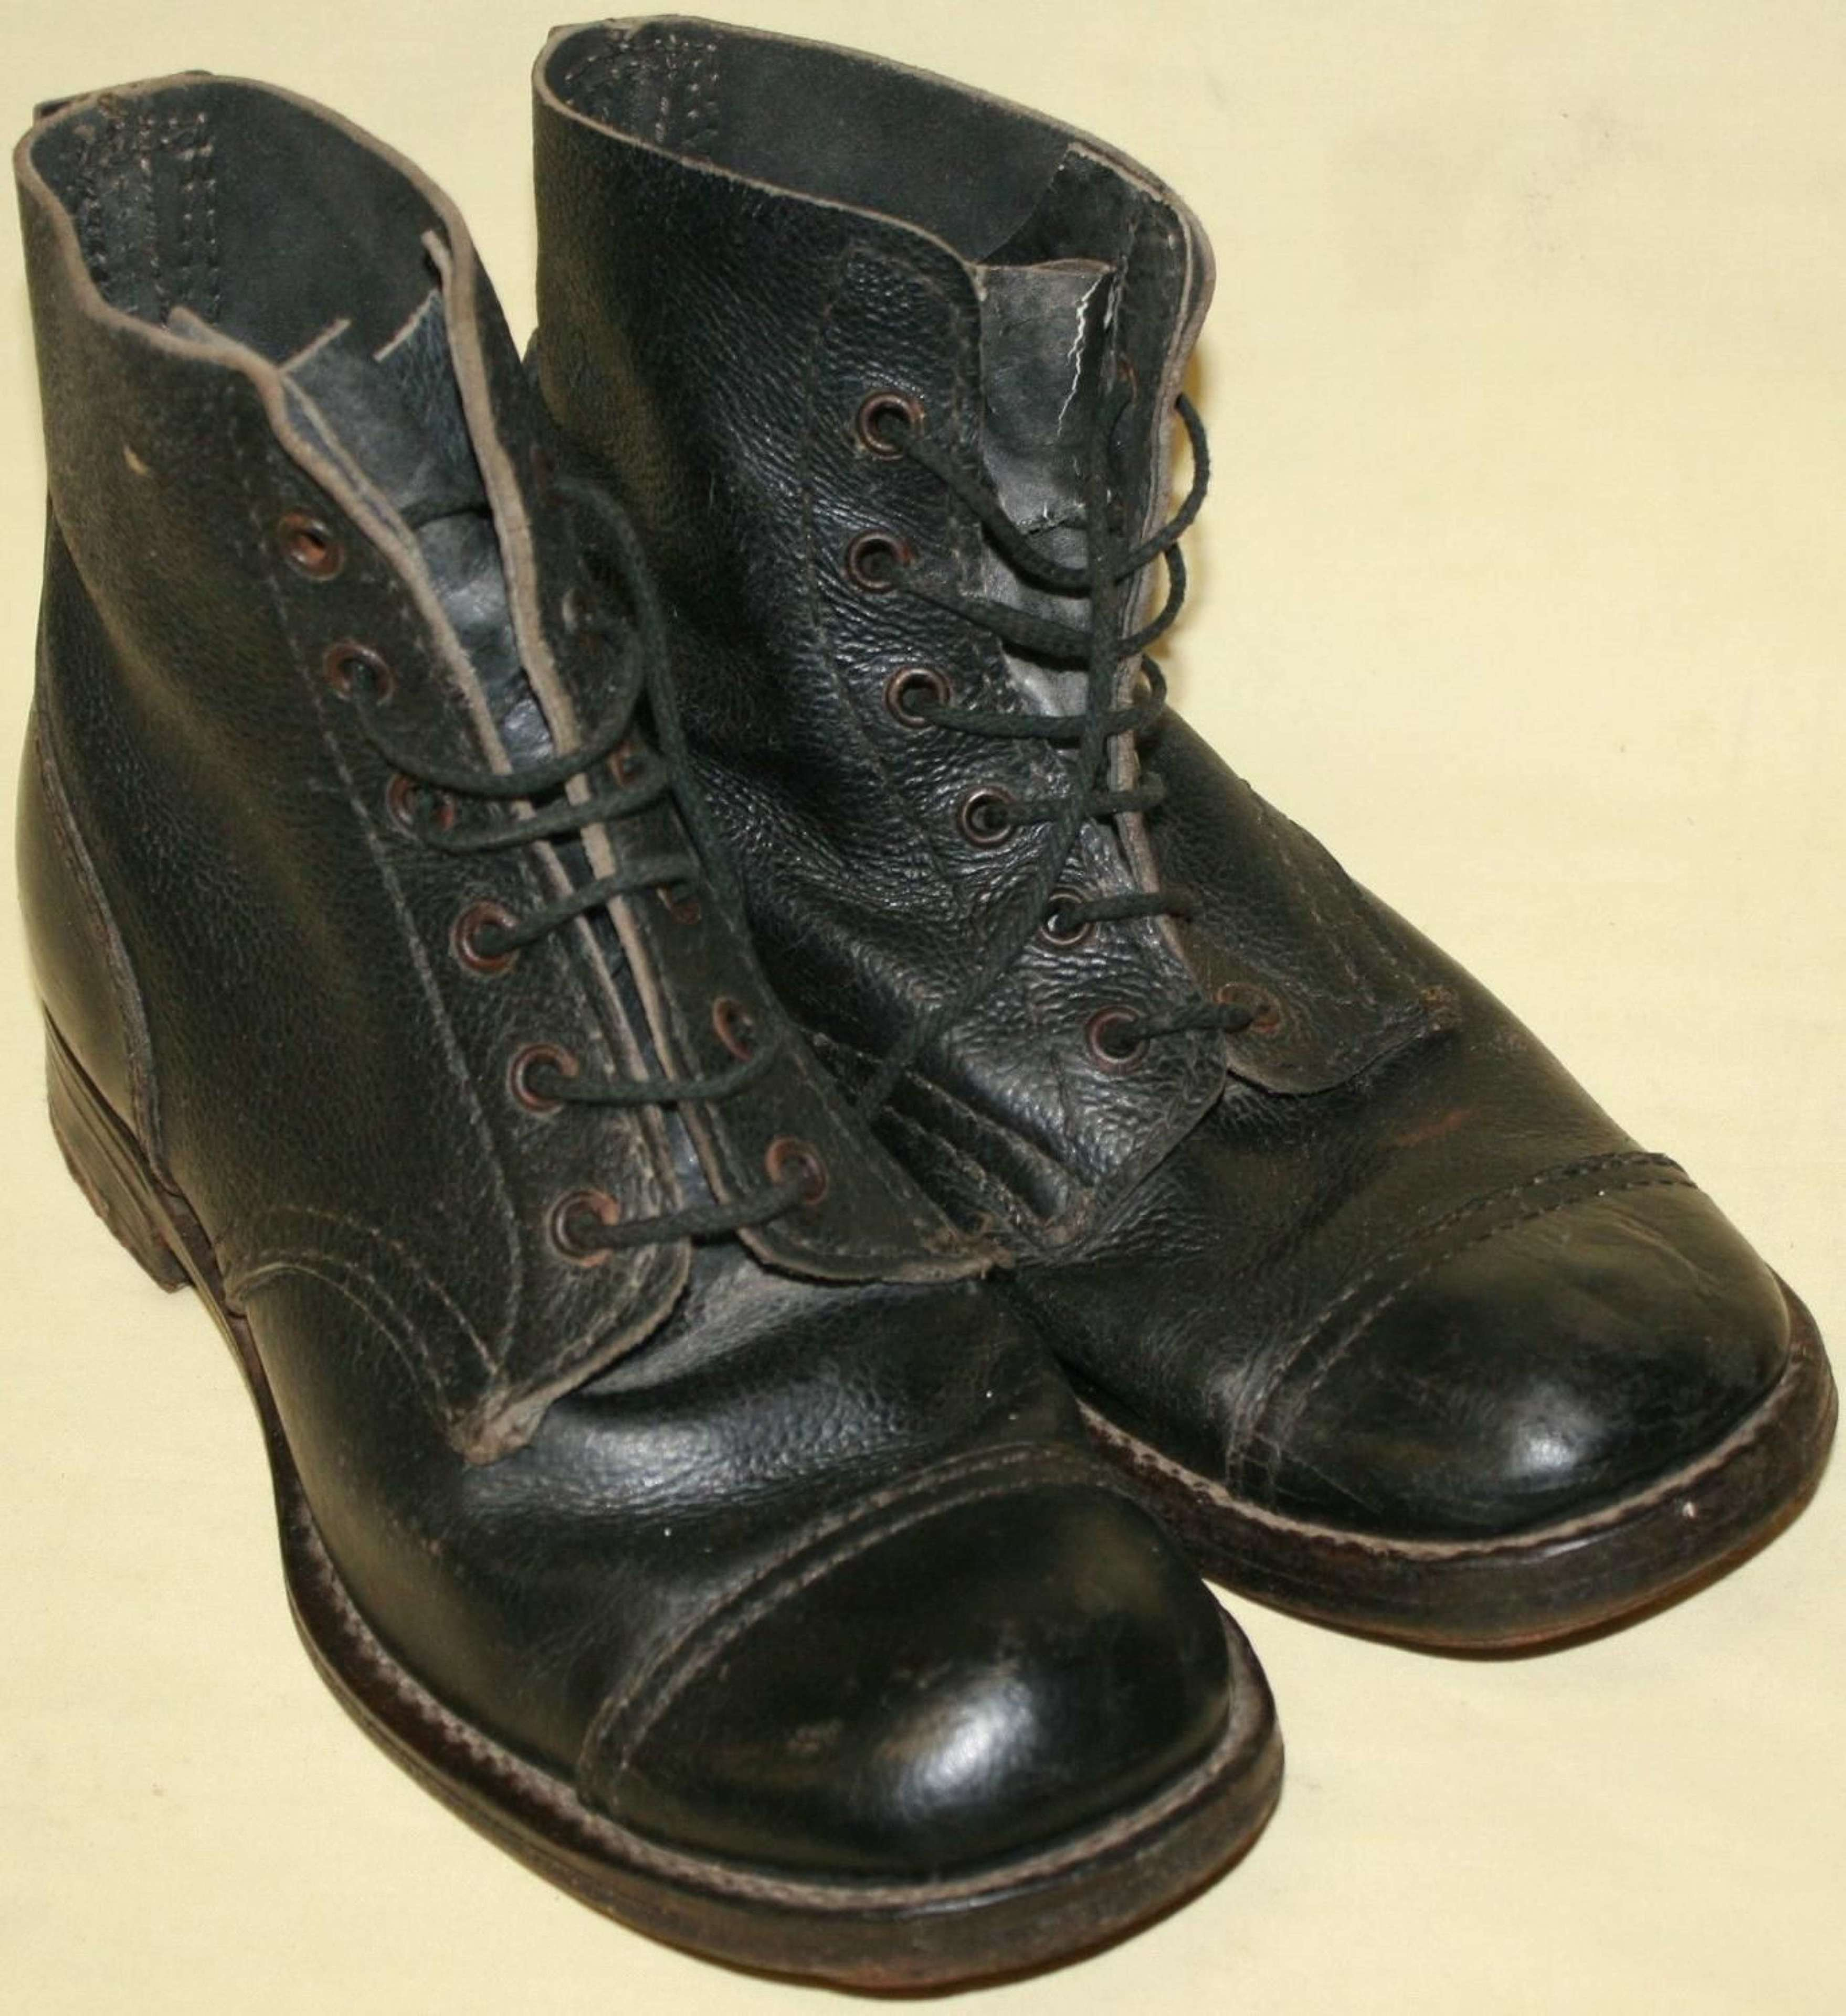 A PAIR OF SIZE 8 M 1944 DATED HOBNAIL BOOTS